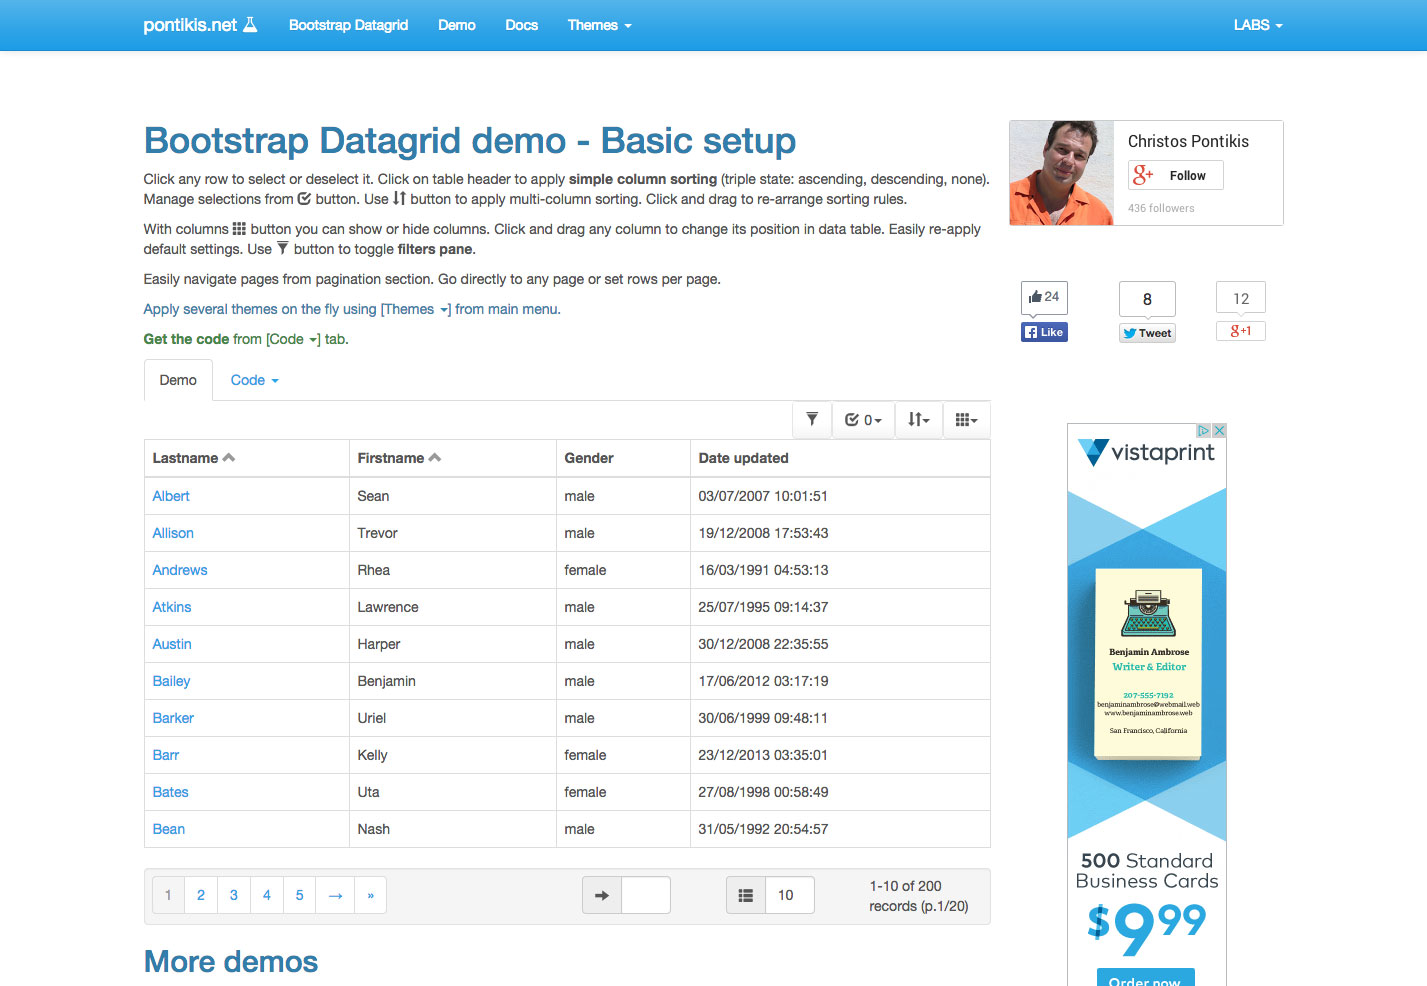 red de datos bootstrap